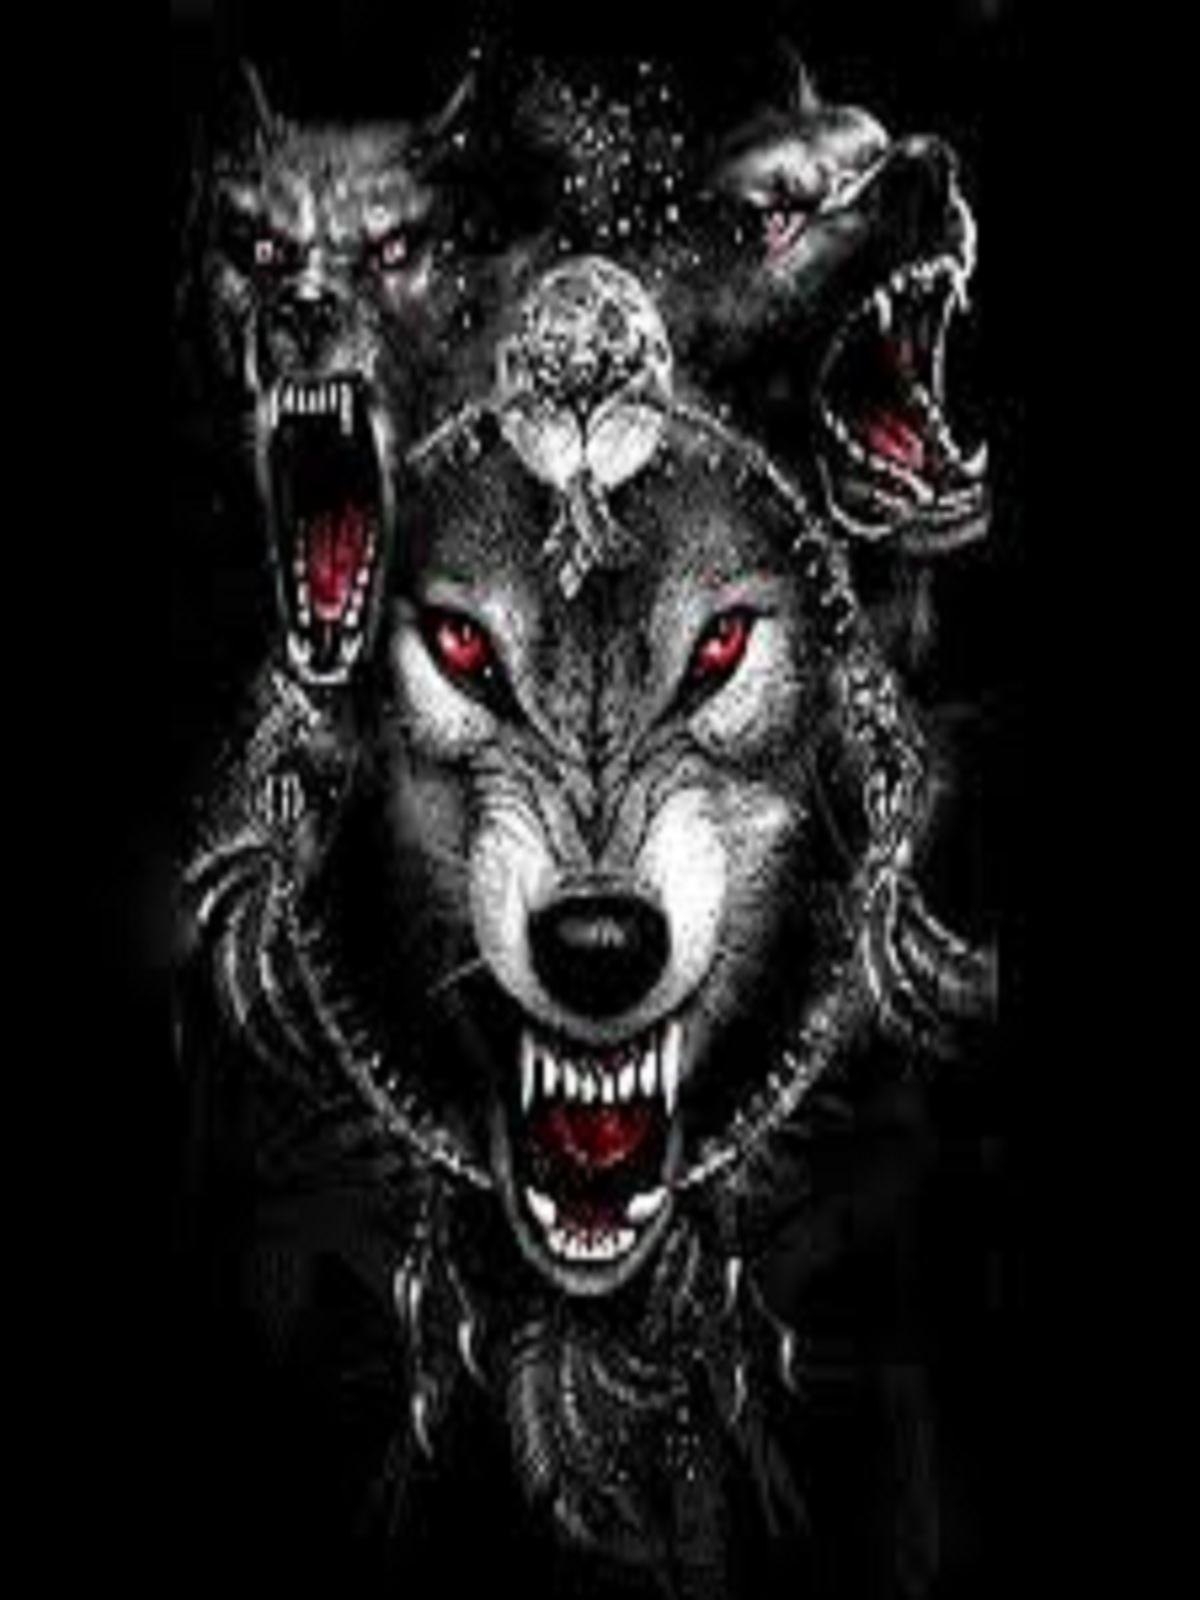 Free Download Wolf Lovers Place Images Dark Wolves Hd Wallpaper And Background 1200x1600 For Your Desktop Mobile Tablet Explore 24 Dark Wolves Wallpapers Dark Wolves Wallpapers Wolves Backgrounds Wolves Wallpaper